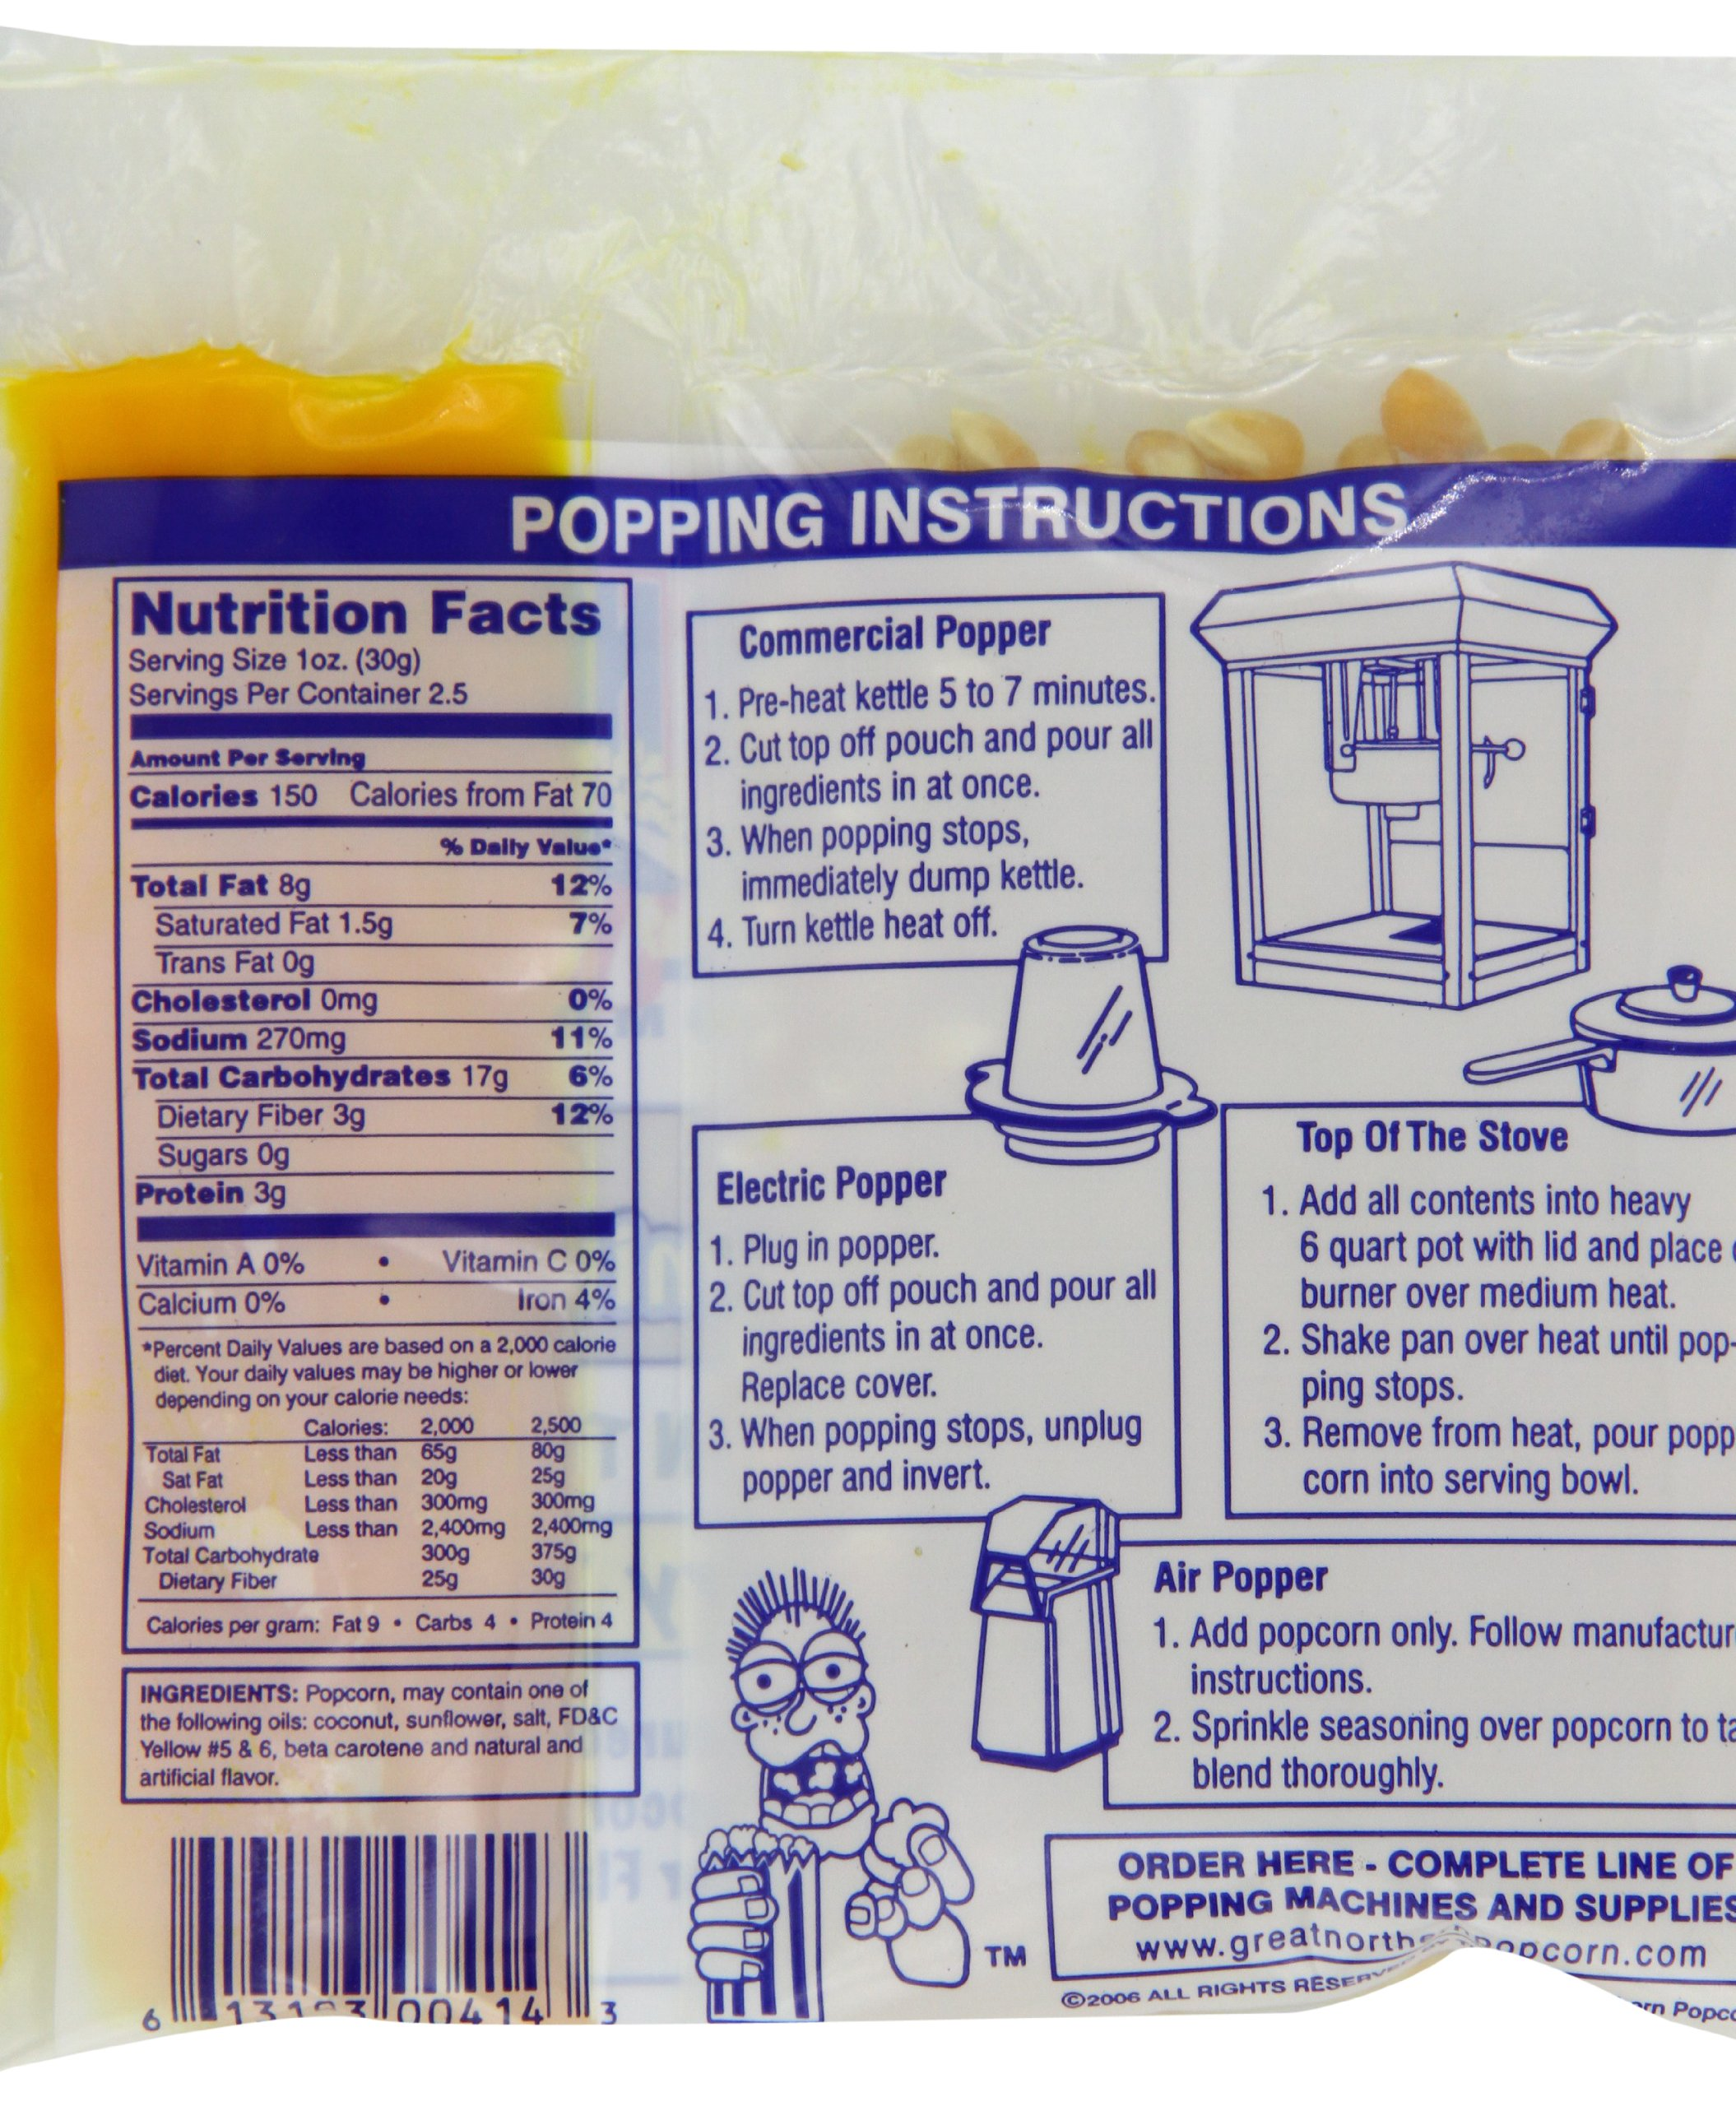 4099 Great Northern Popcorn Premium 2.5 Ounce Popcorn Portion Packs, Case of 24 by Great Northern Popcorn Company (Image #4)